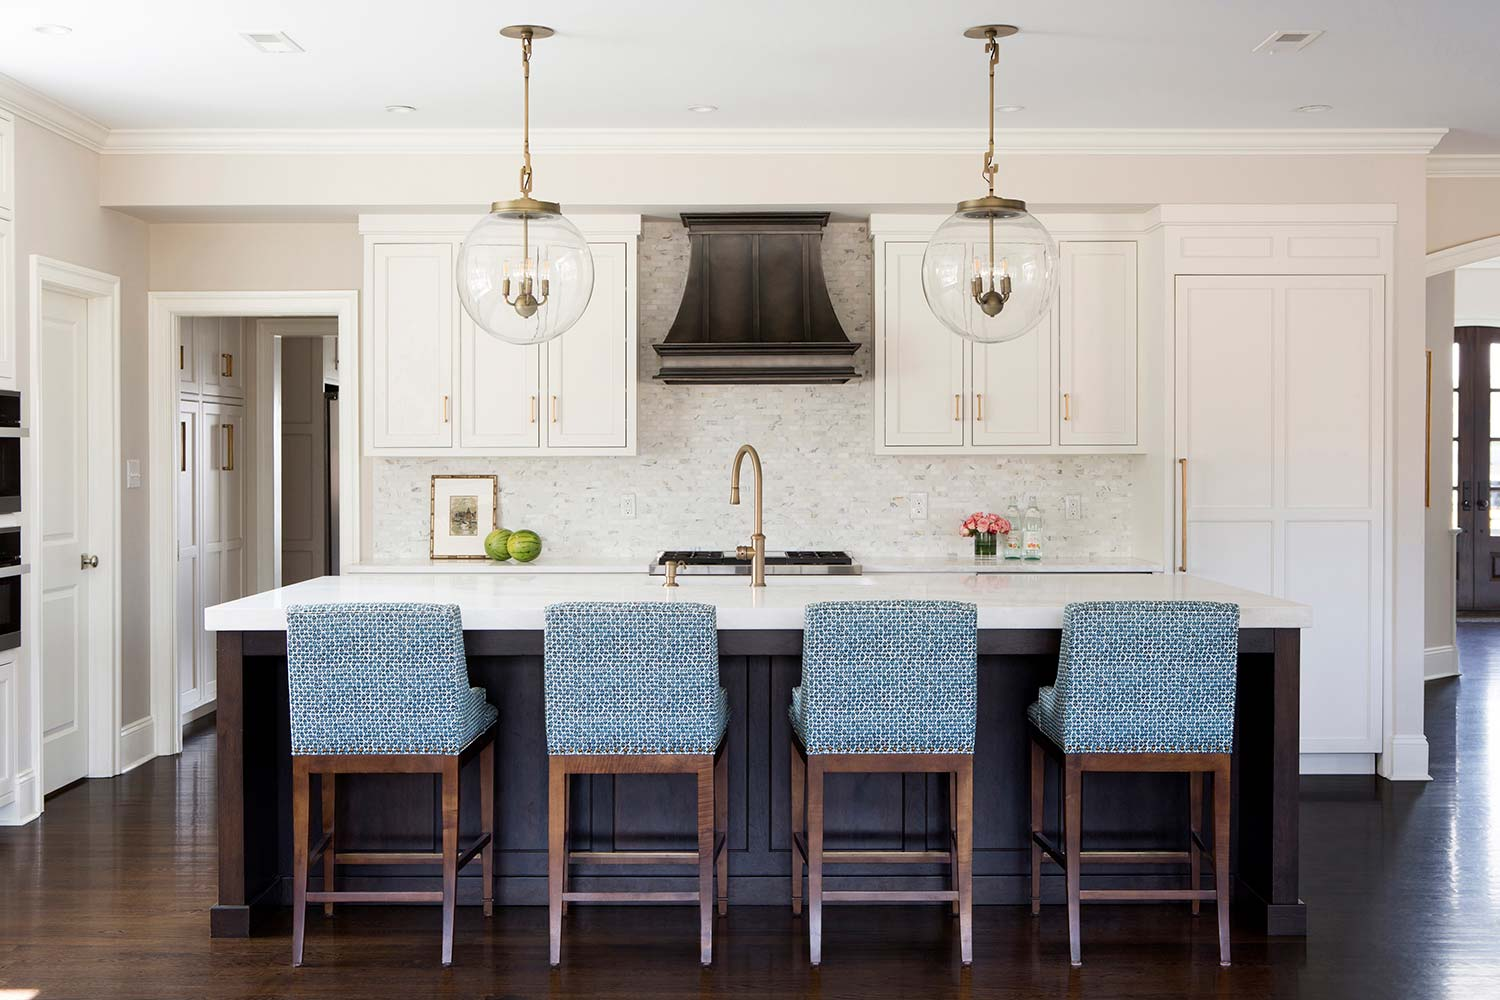 TriDot Blue Kitchen Chairs